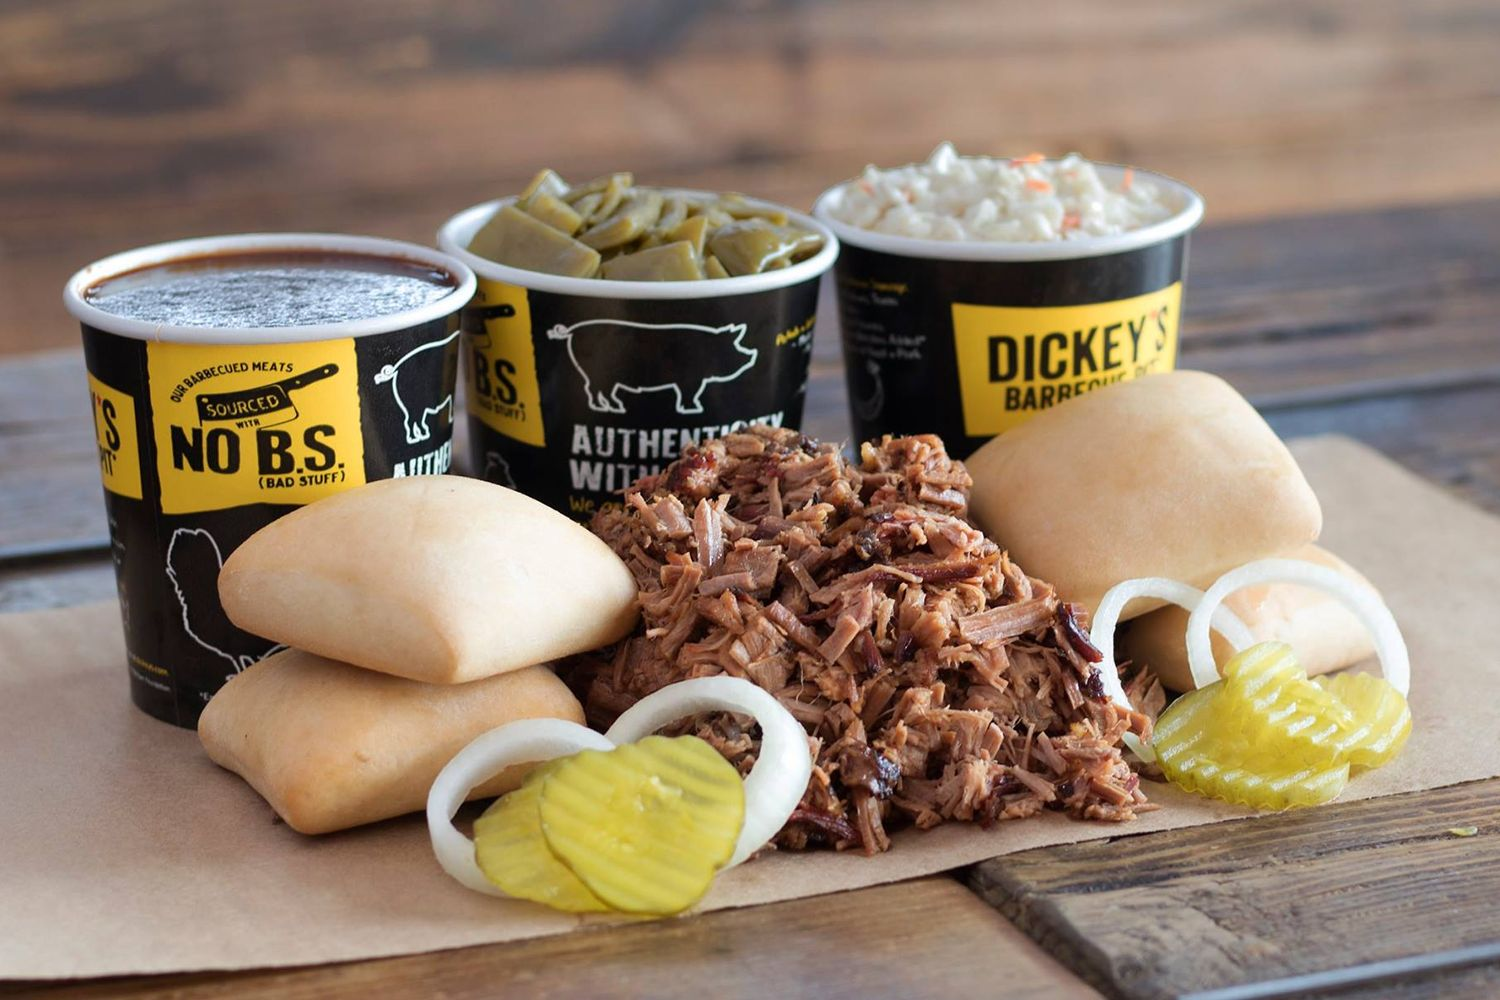 Local Franchisee Brings Dickey's Barbecue Pit to Annapolis